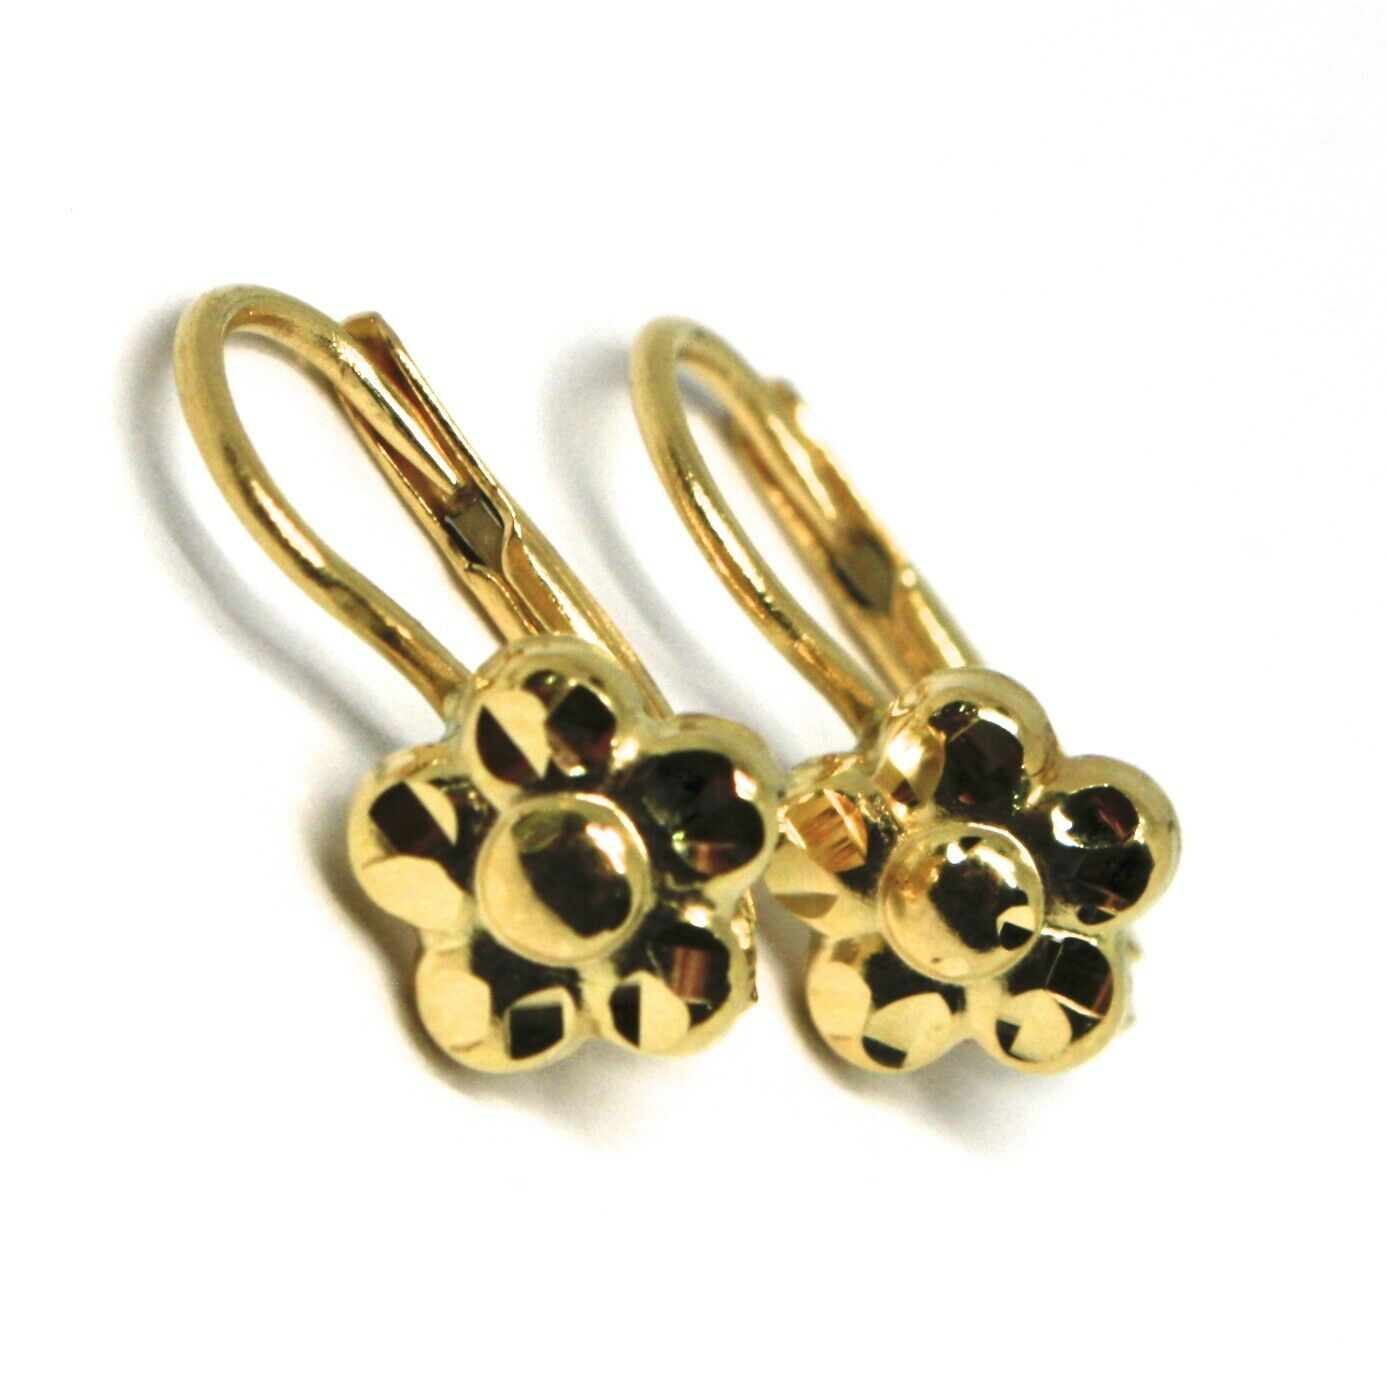 18K YELLOW GOLD KIDS EARRINGS, FINELY HAMMERED FLOWER DAISY LEVERBACK CLOSURE